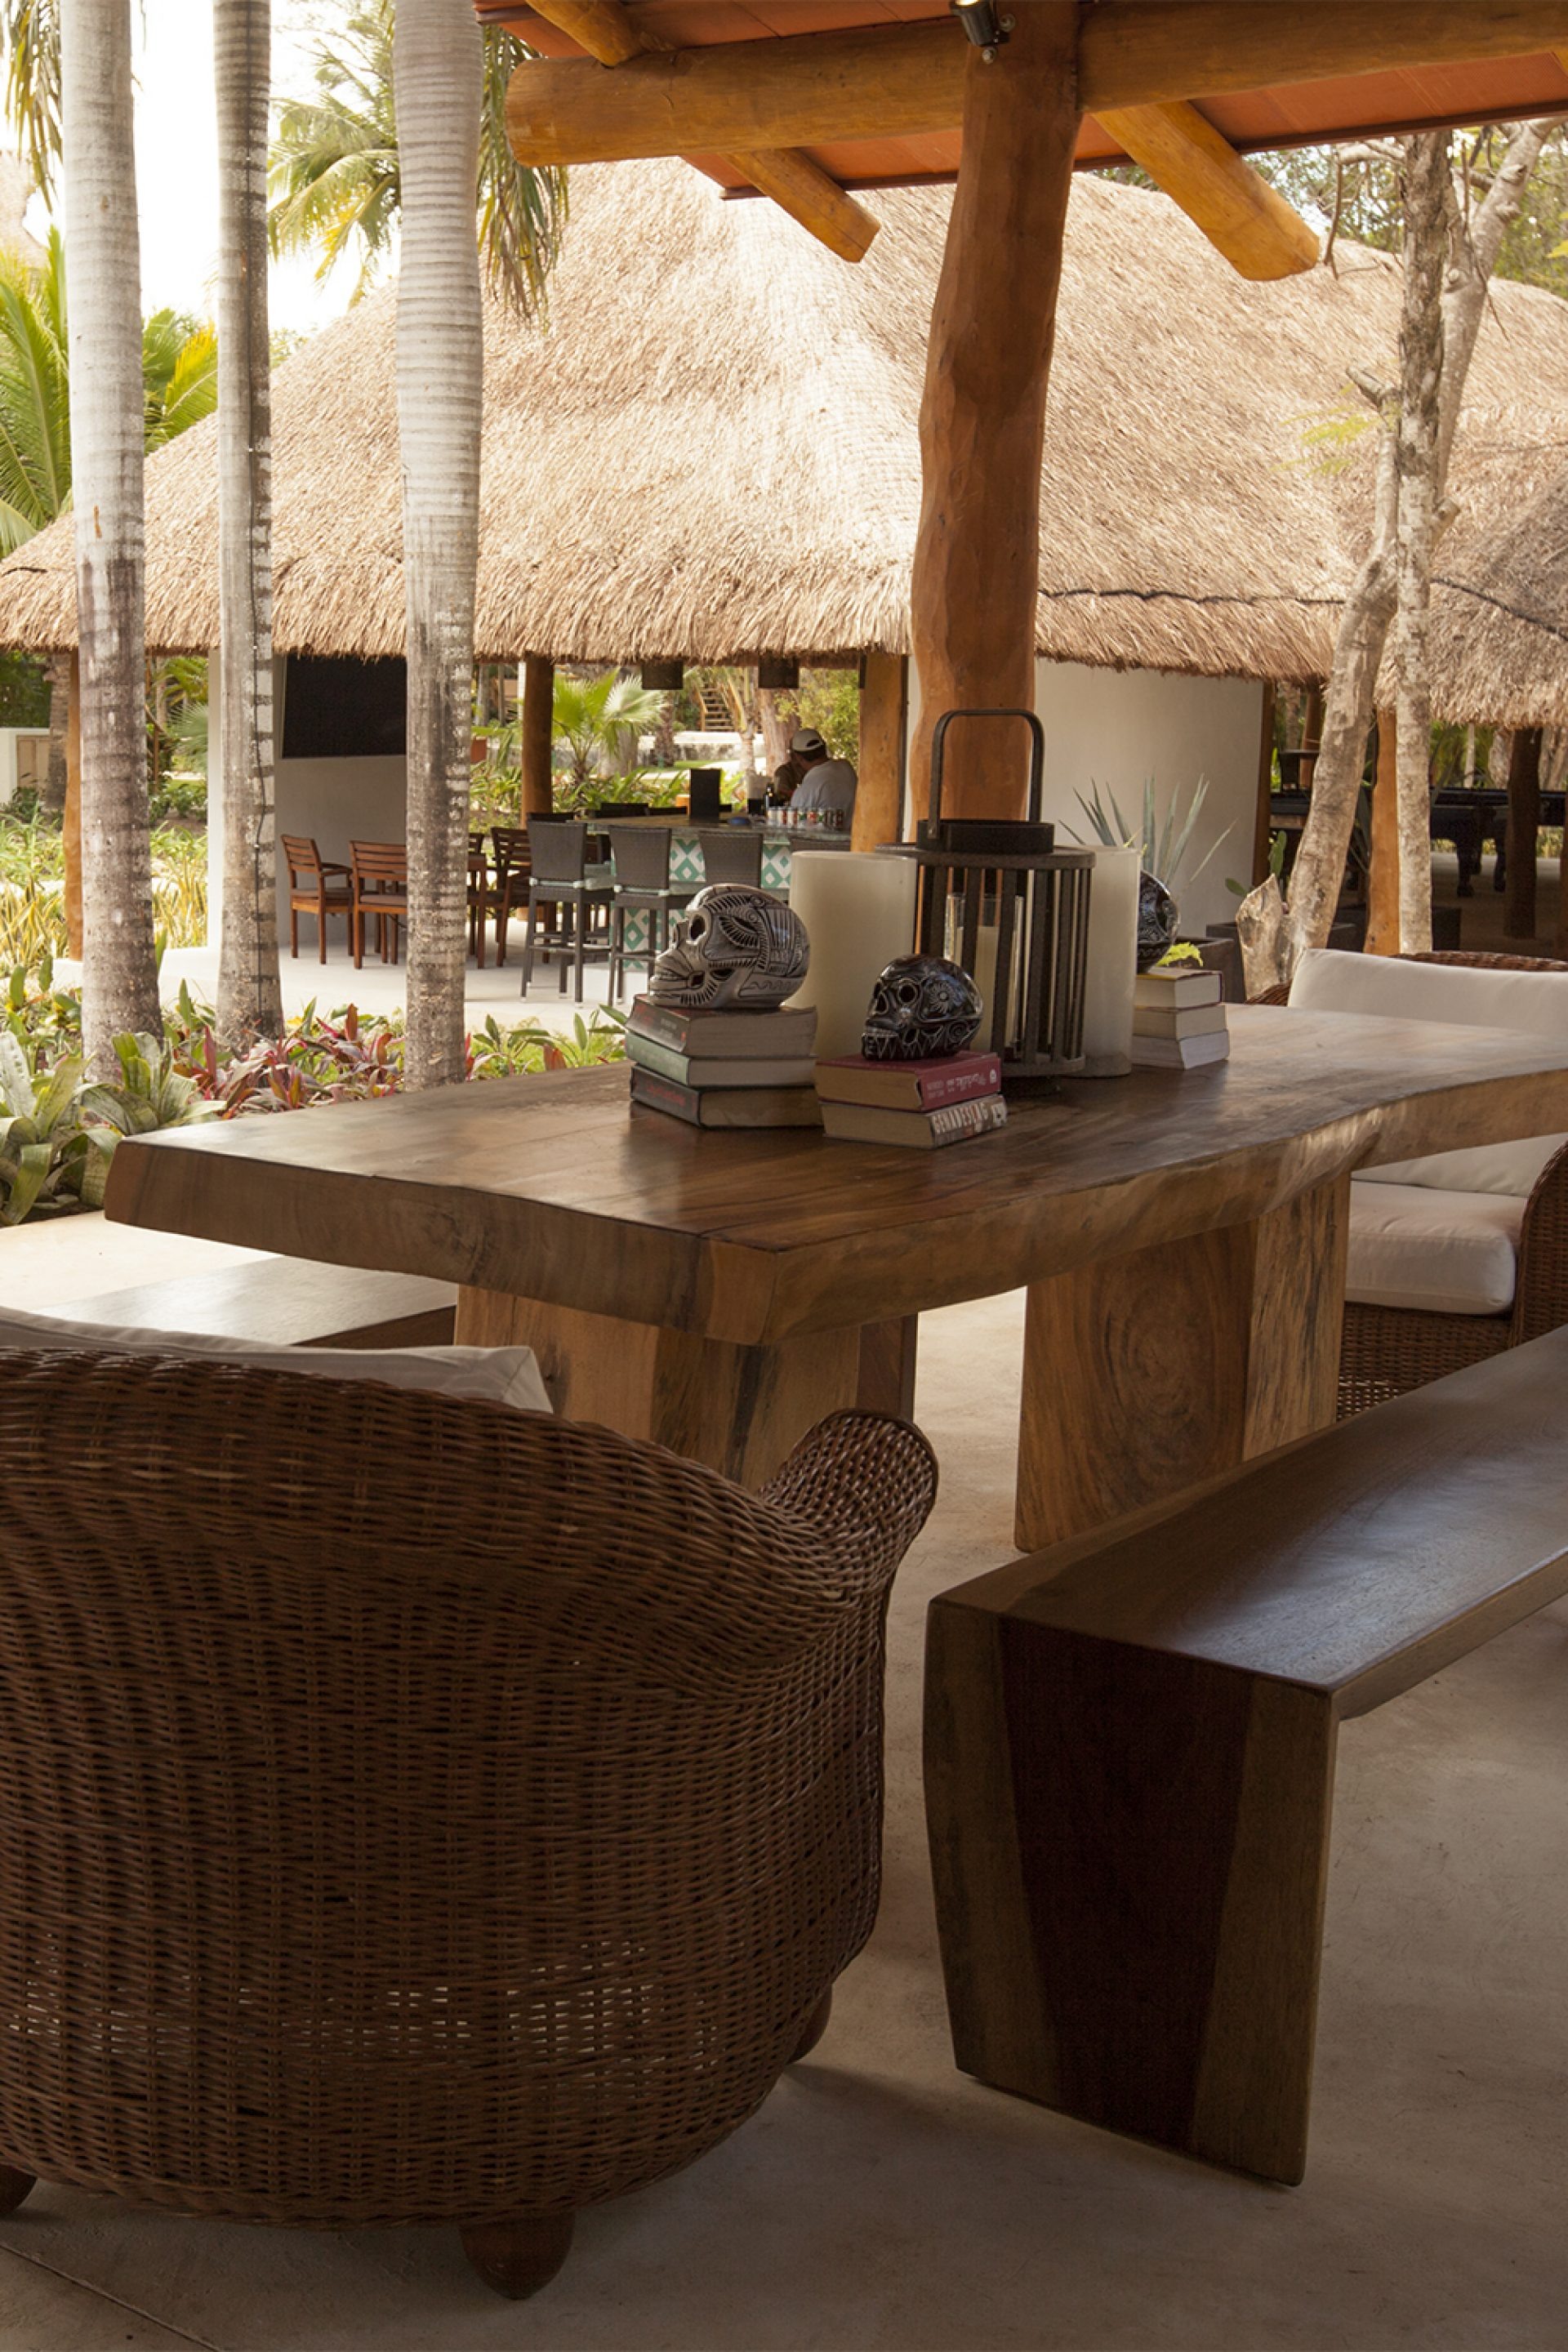 Welcoming outdoor lobby with authentic Mayan furnishings at Mahekal Beach Resort